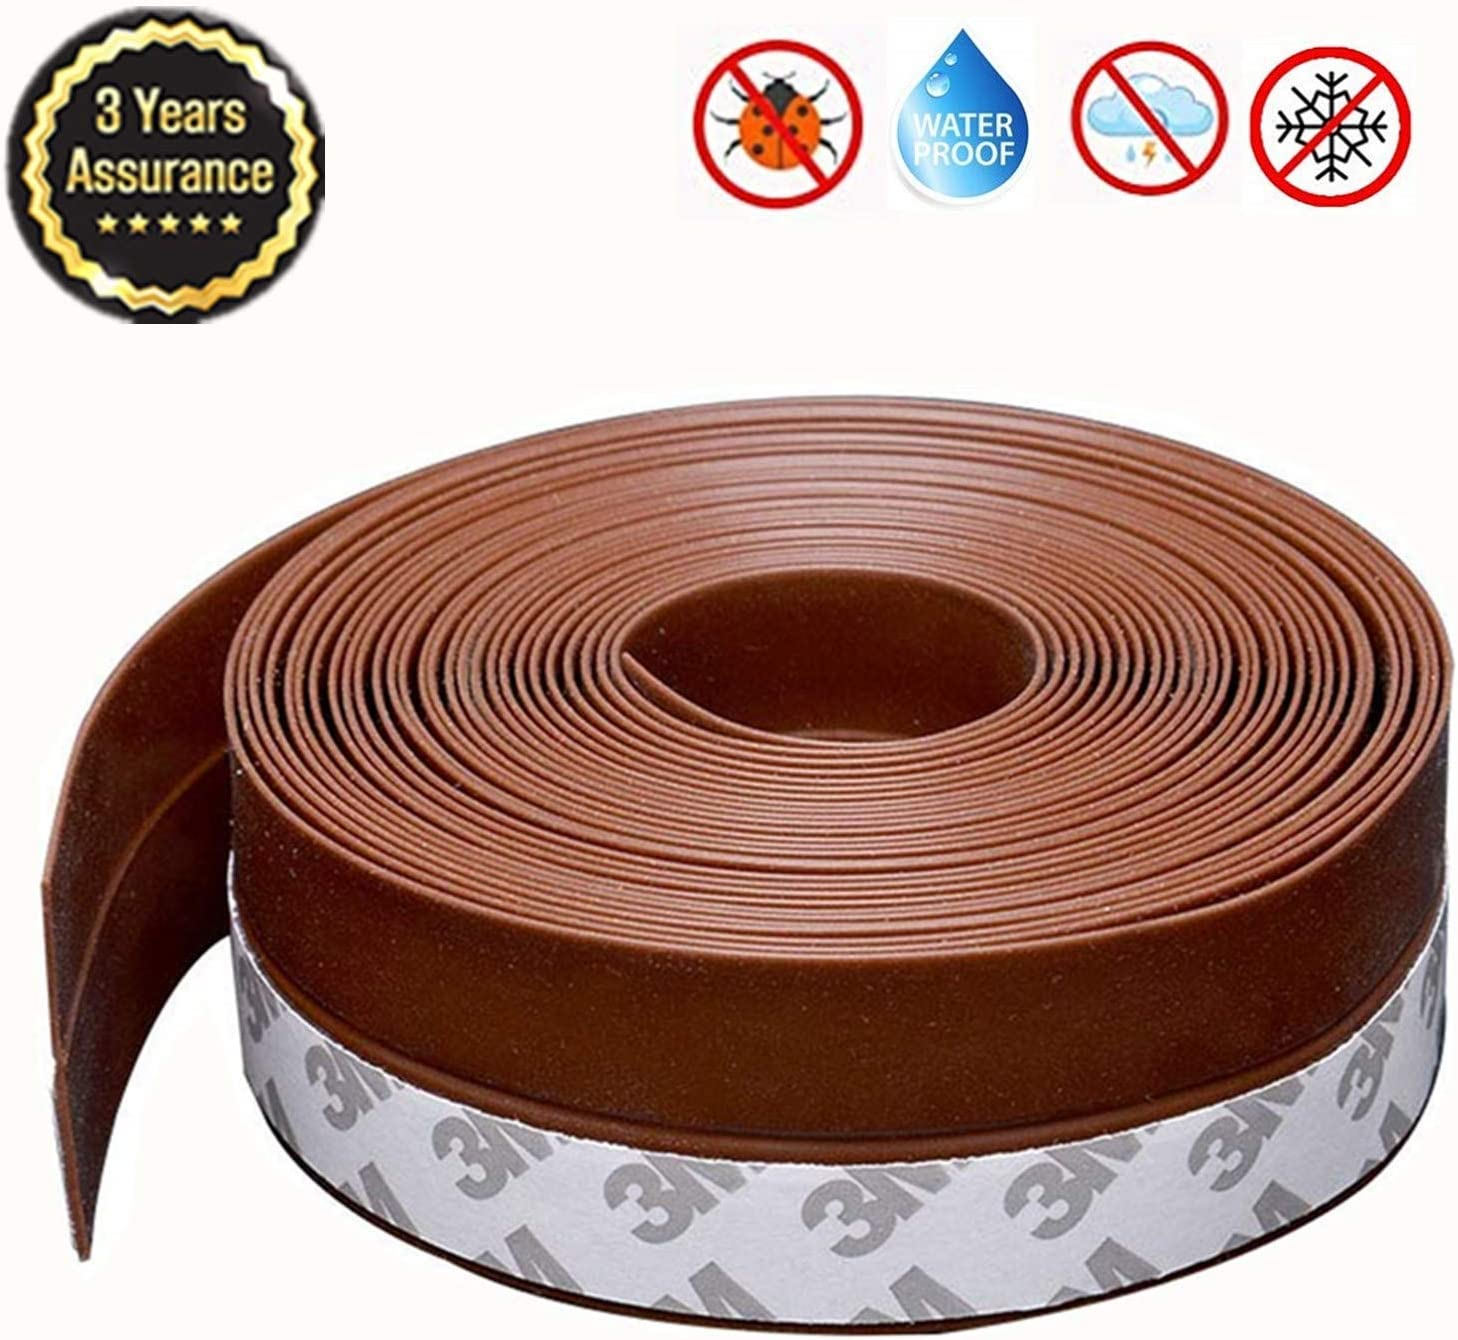 Weather Stripping, Aheadife Door Seal Strip Self Adhesive Silicone Draft Bottom Gap Replacement Strip Roll Soundproof for Door, Window 16.5Ft/26.3Ft(35mm, Brown)